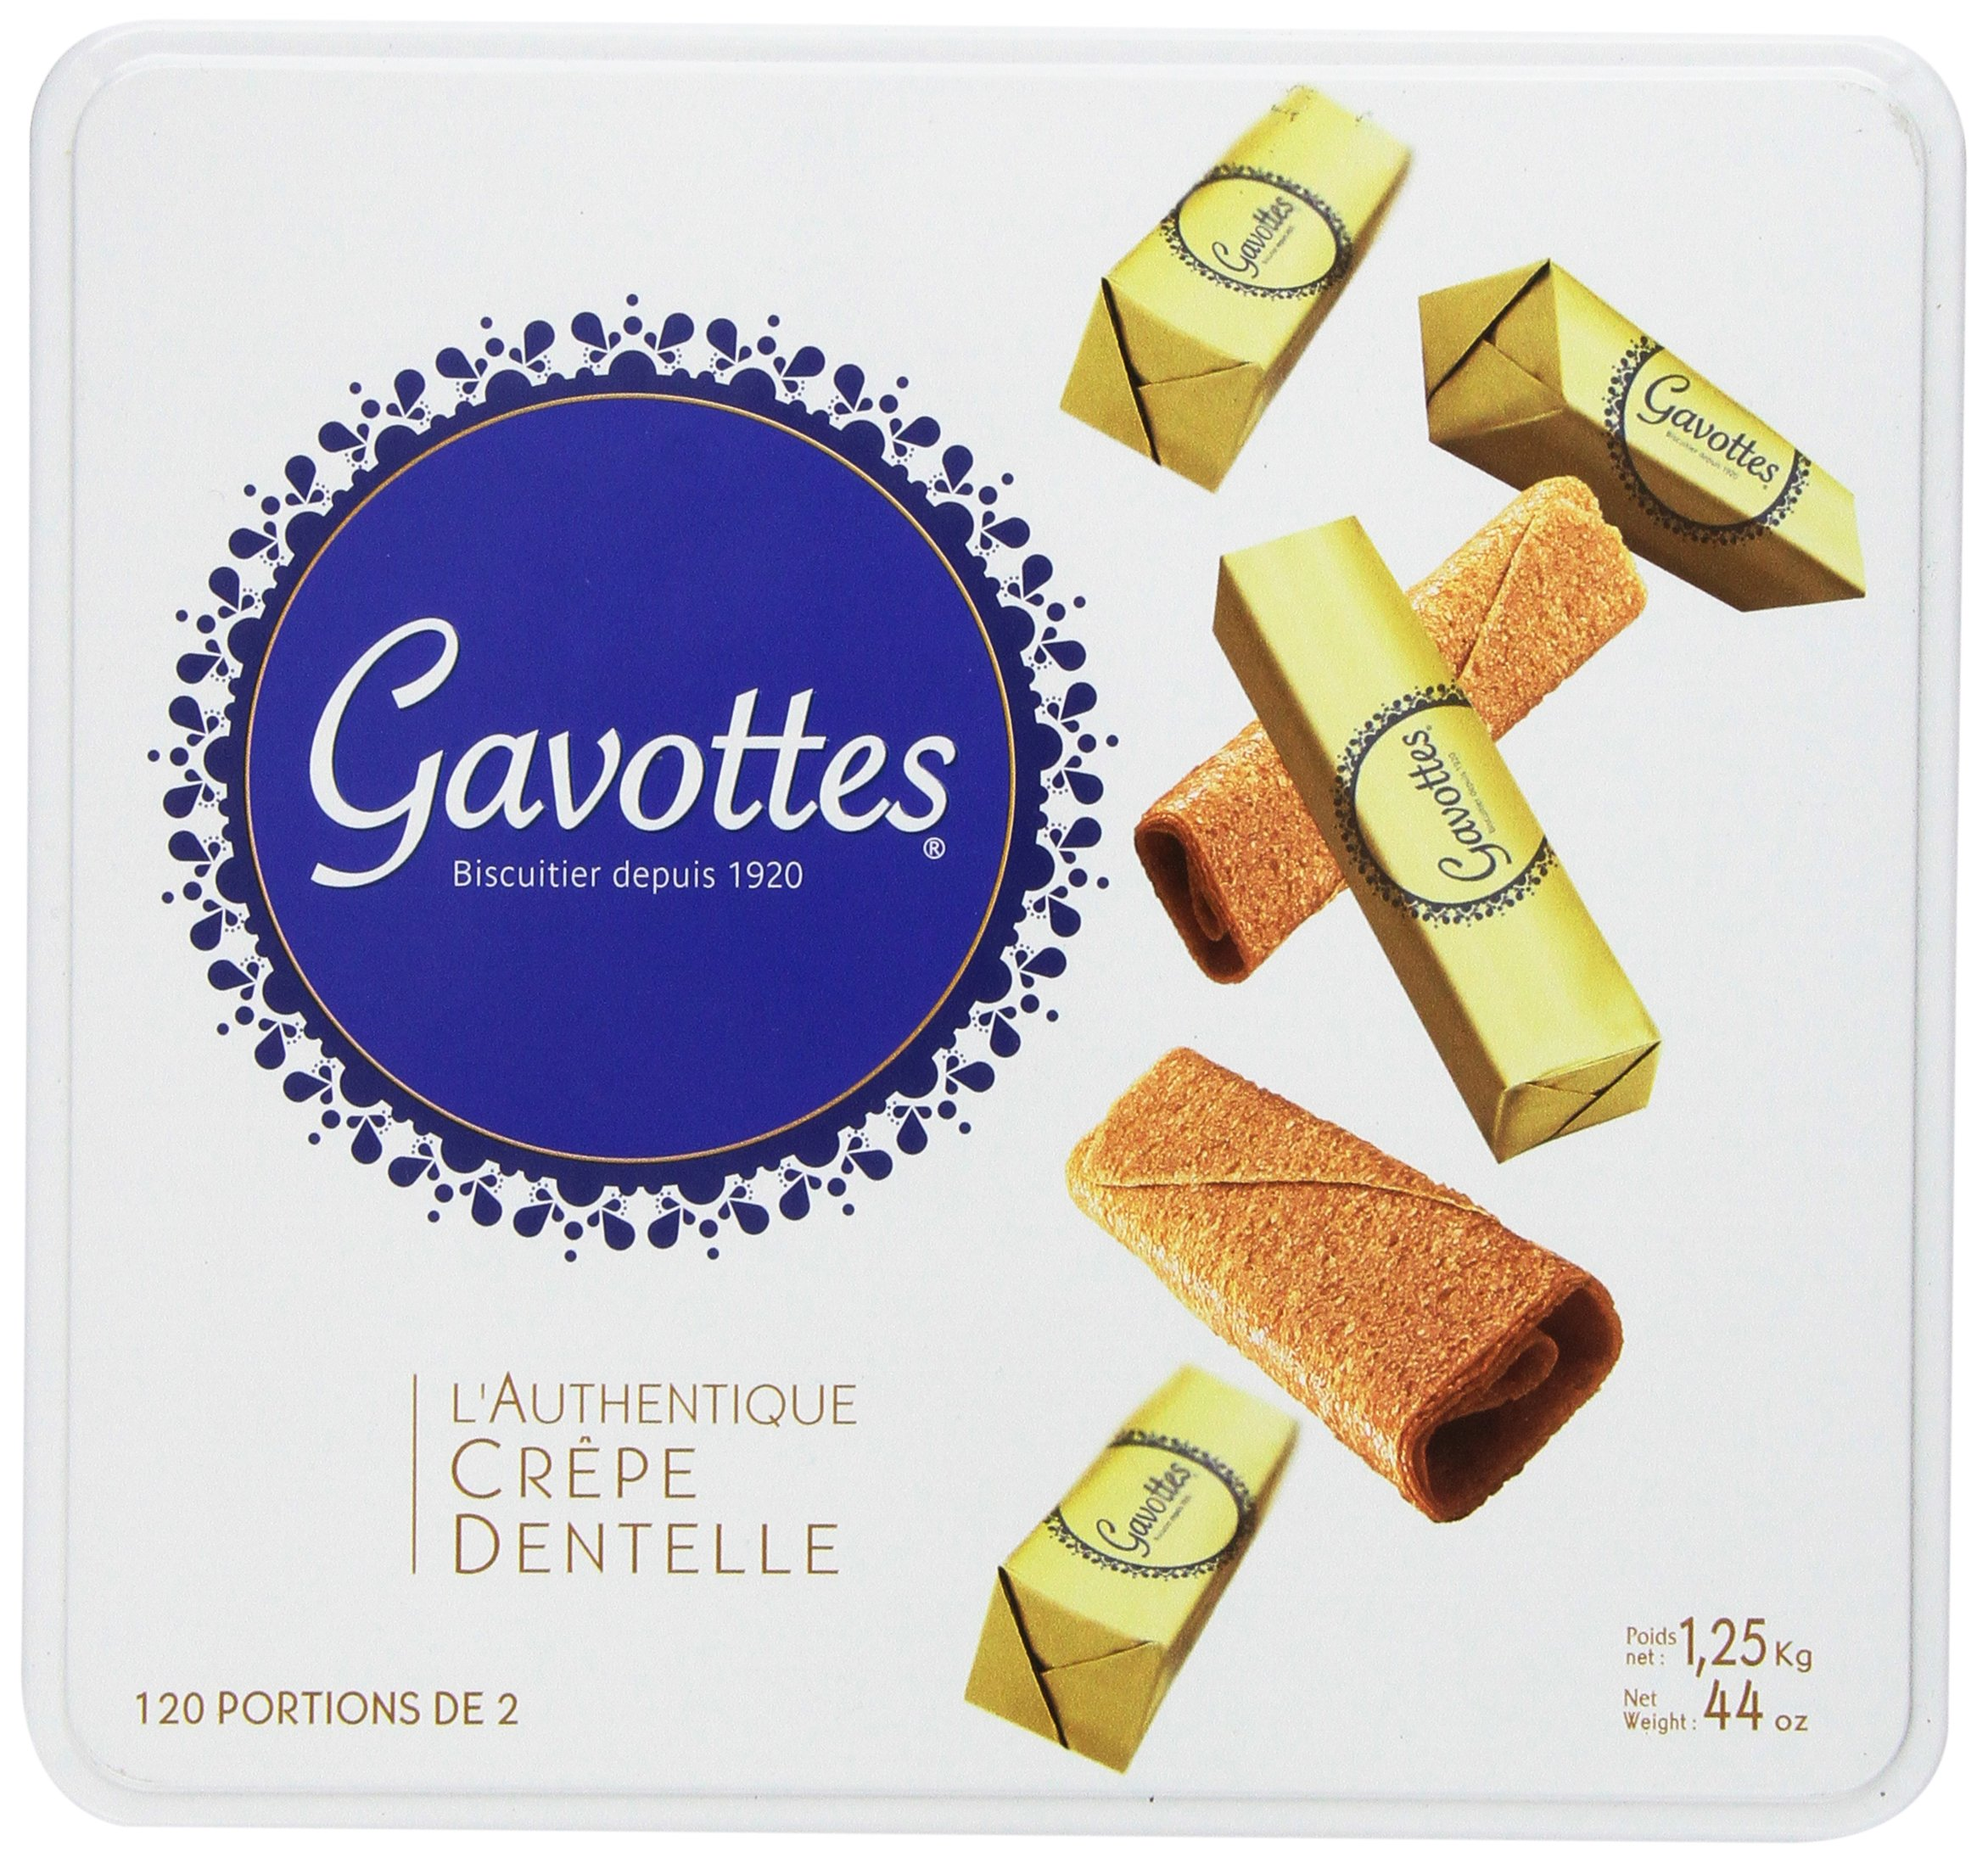 Gavottes - Crispy Lace Crepes from France, 240ct, 44oz